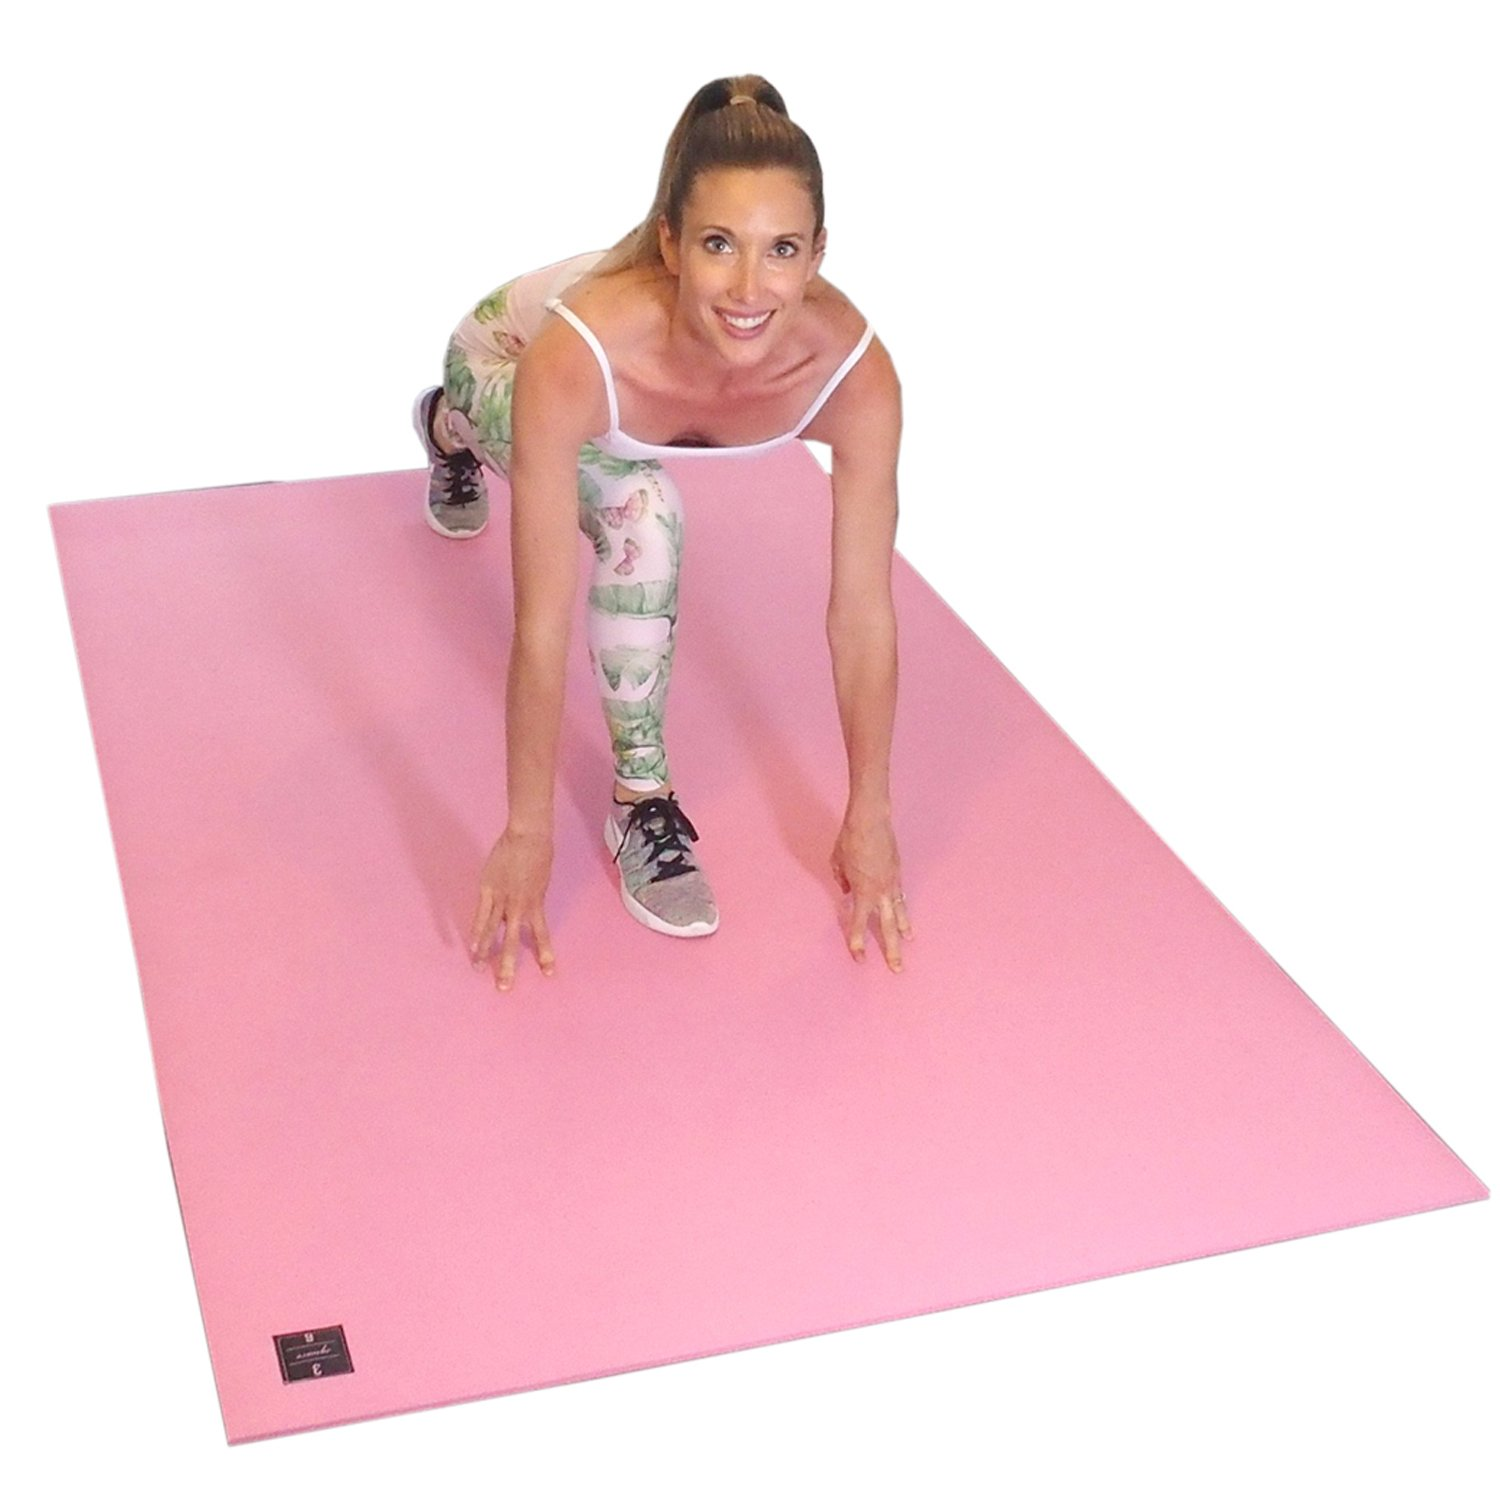 Square36 Large Exercise Mat 6.5 Ft x 4 Ft. Ideal for Home Cardio Workouts with Or Without Shoes. Roll Out in Living Room & Roll Up to Store Large Fitness Mat. (Pink)